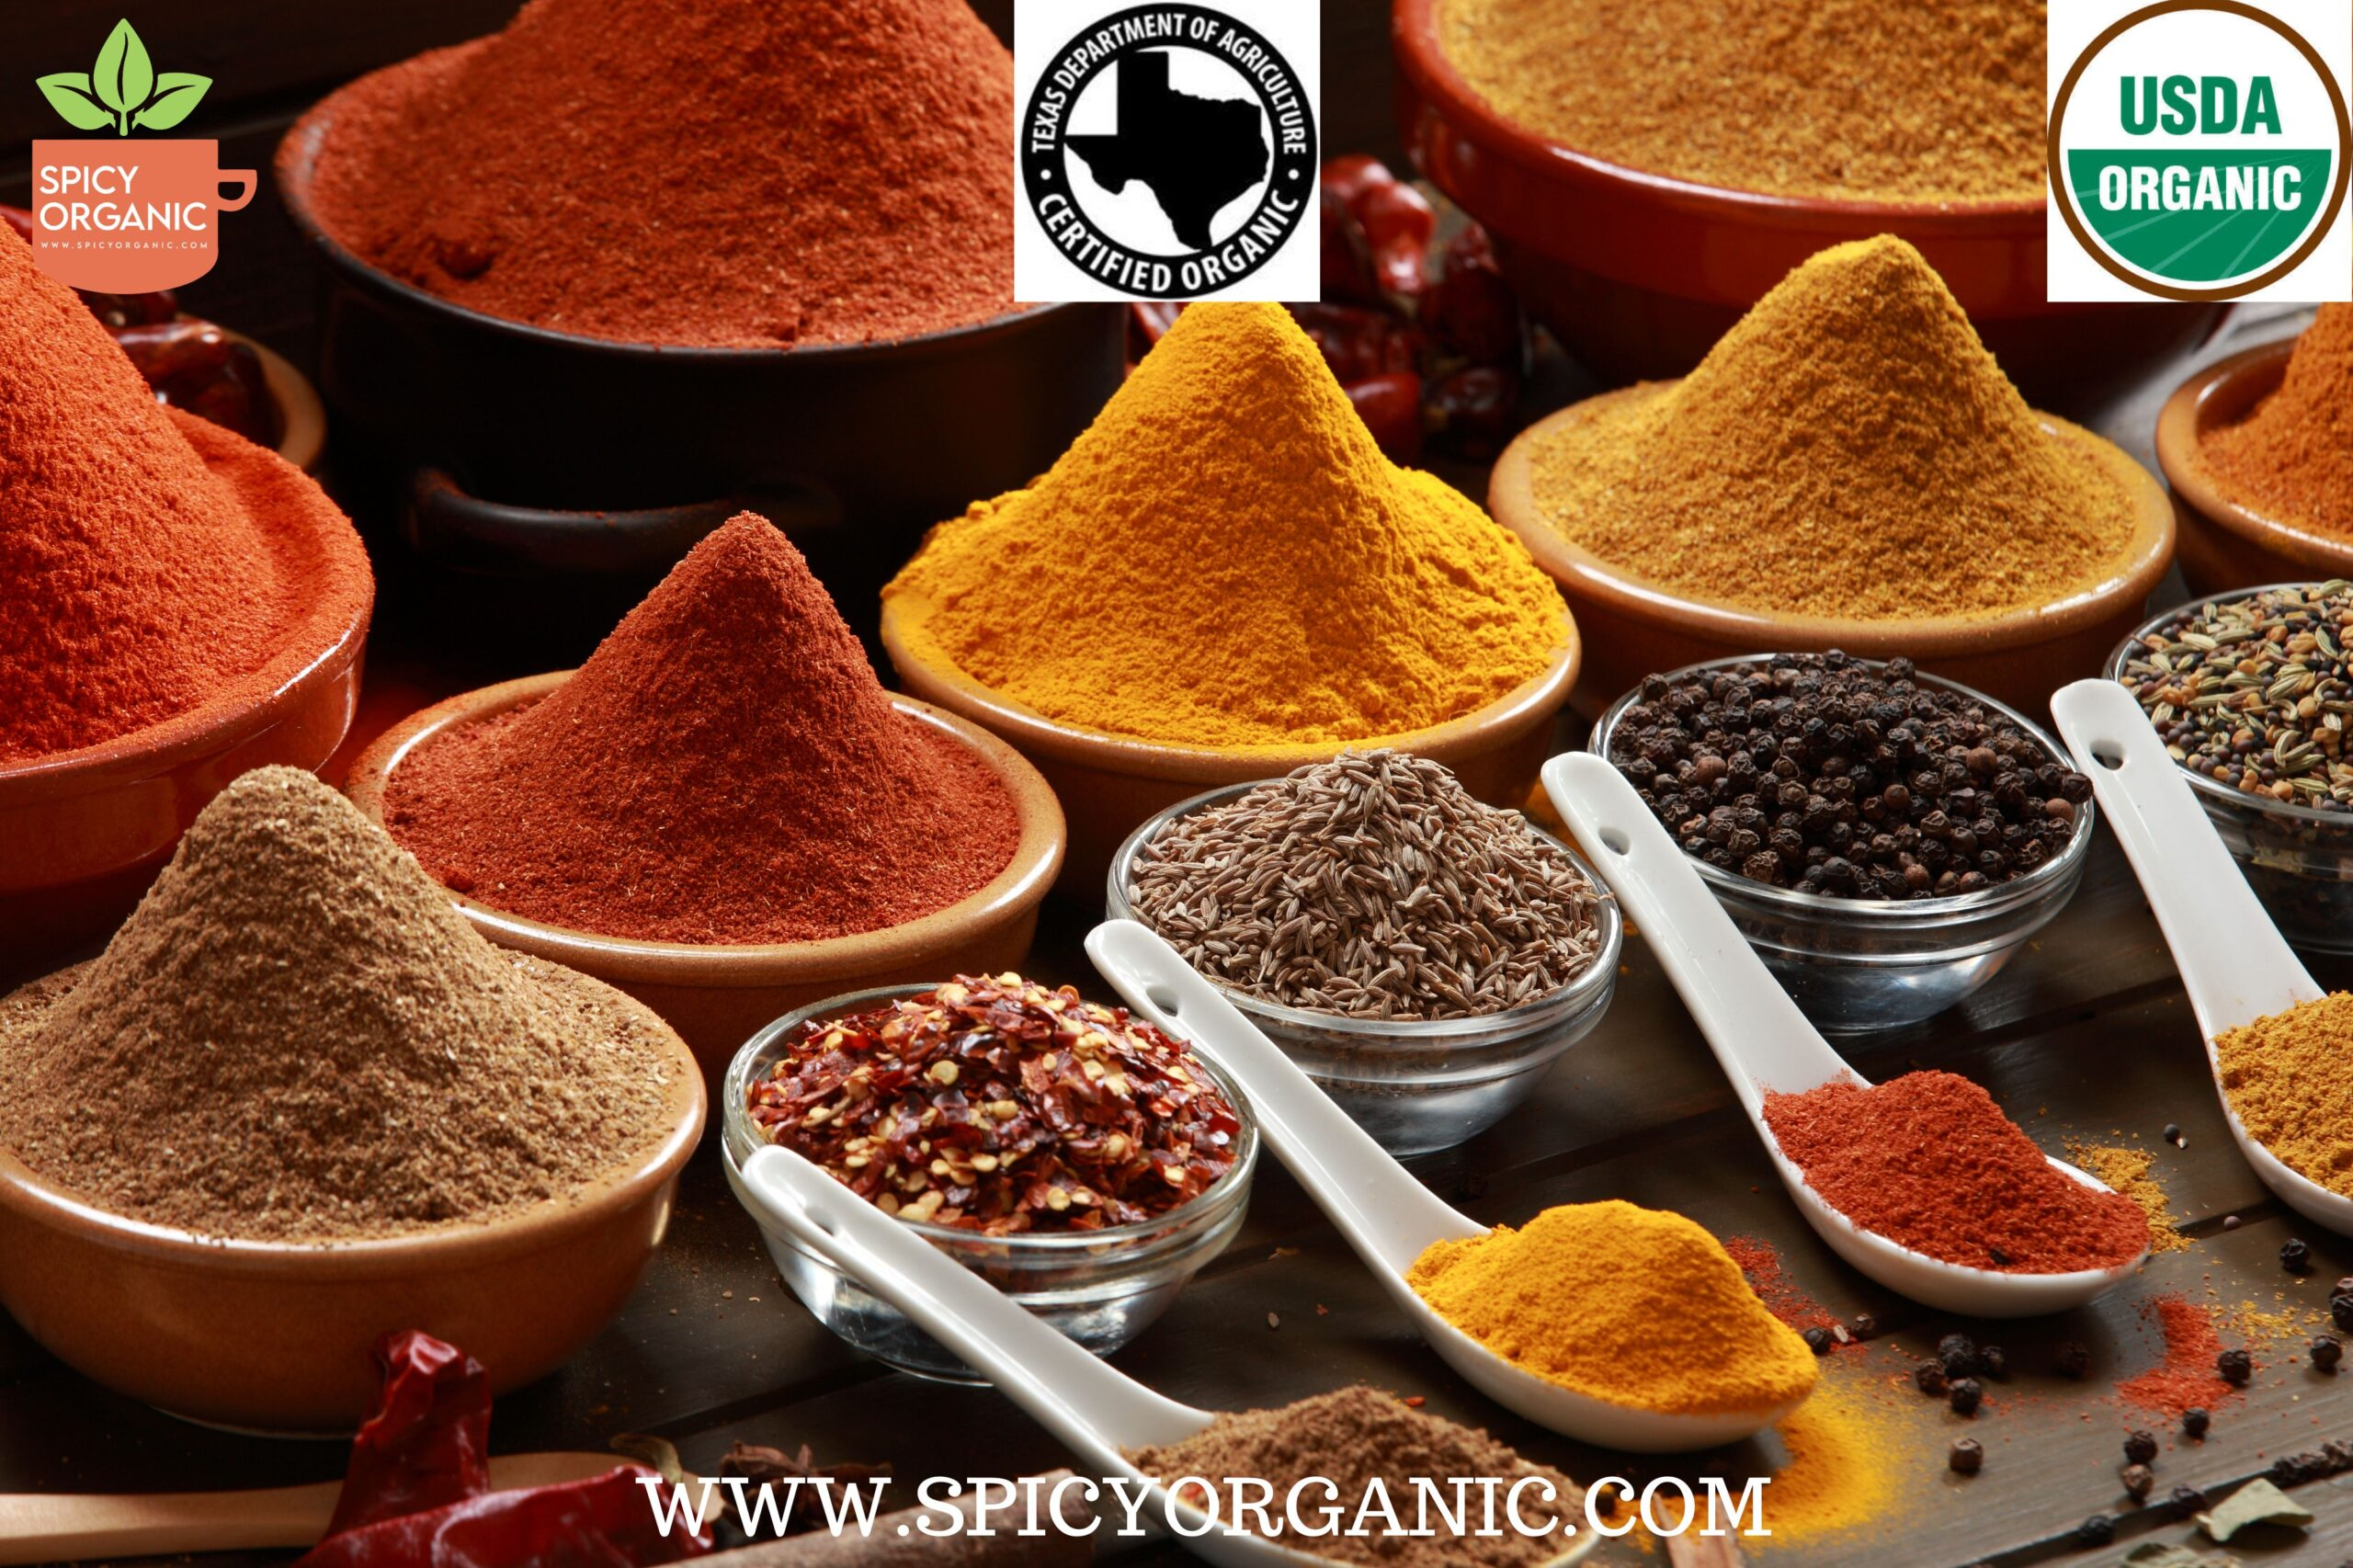 Spicy Organic Added 23 Products Expanding Their Reach With Exclusive & Quality Products Providing Diverse Options & 40 Years of Experience